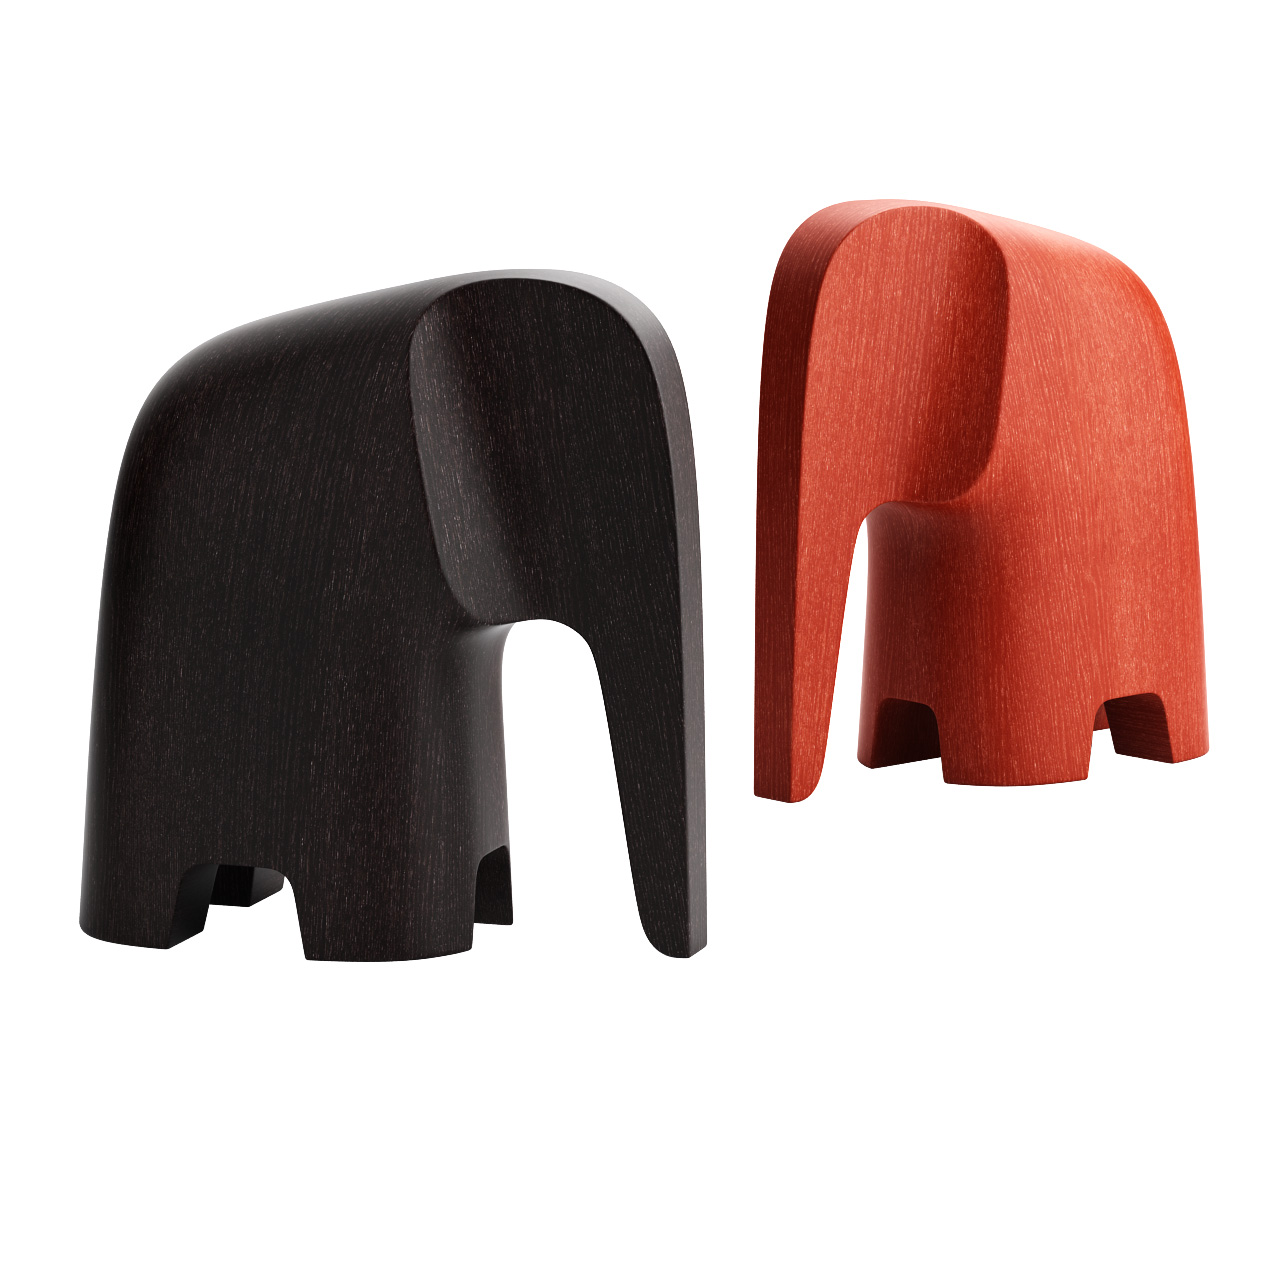 Olifant Decorative Object by Caussa